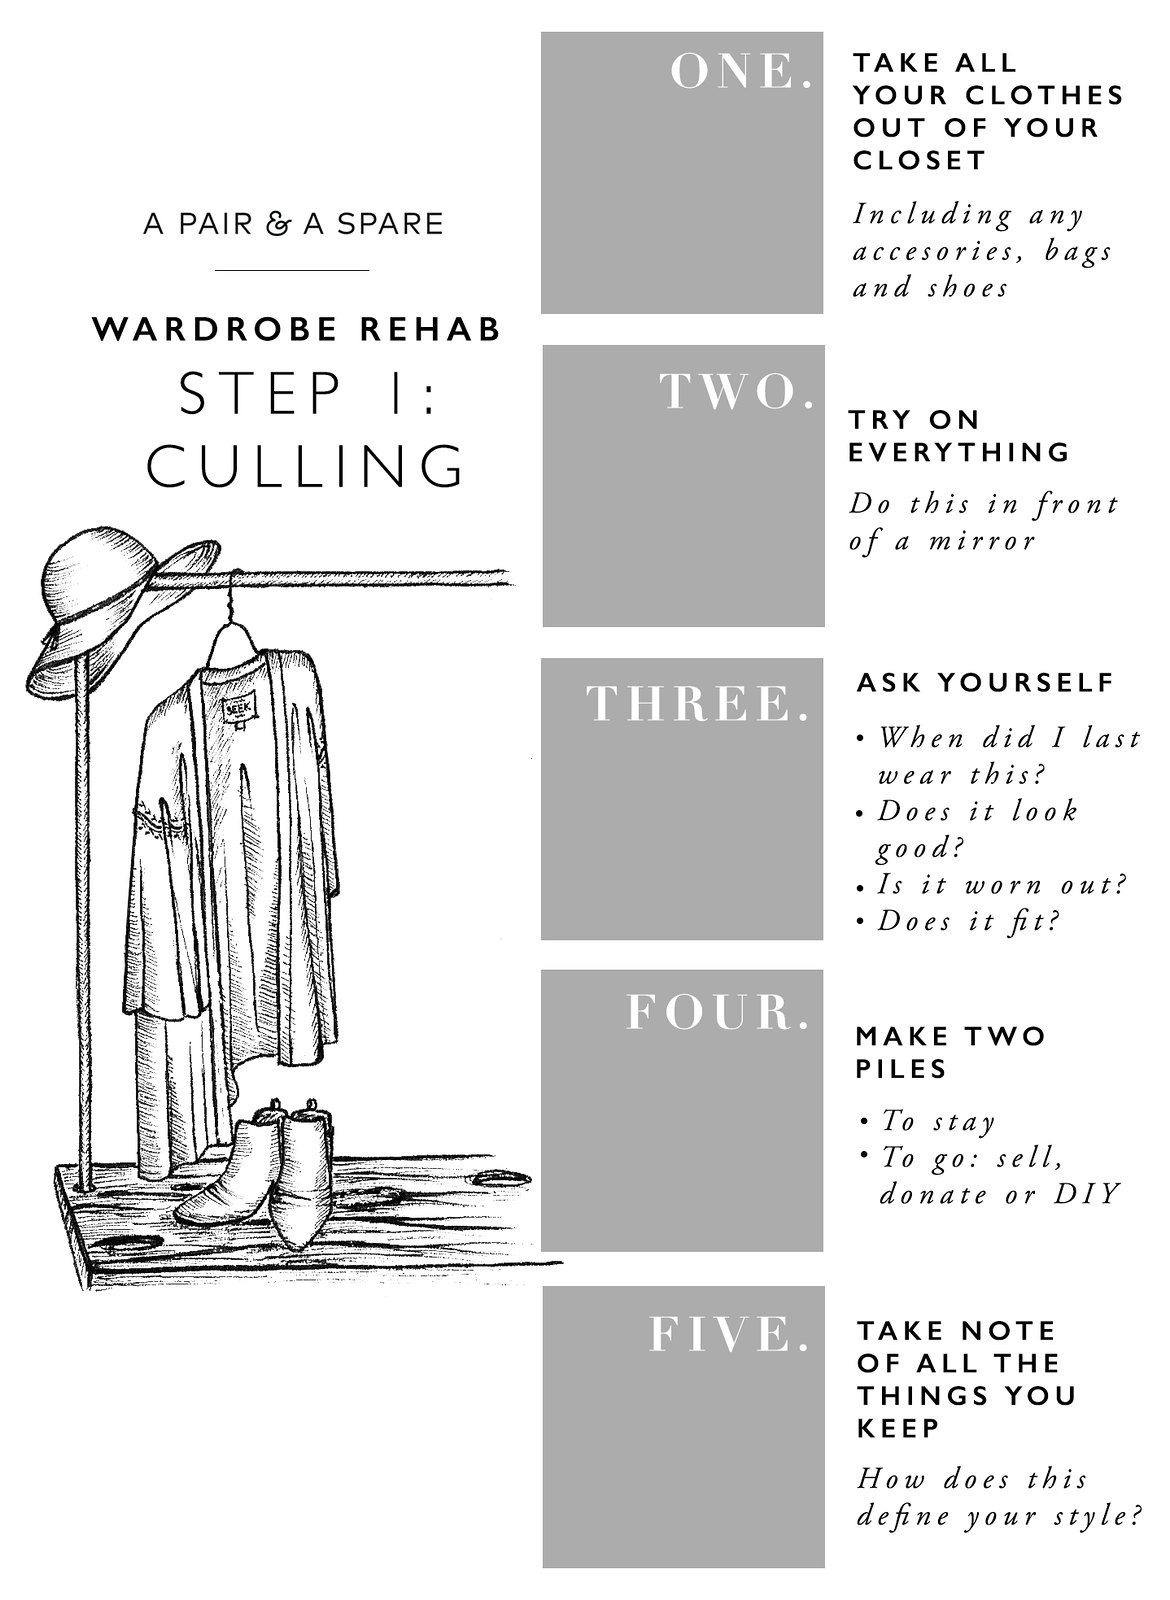 Wardrobe Rehab Step 1: How To Cull Your Wardrobe « A Pair